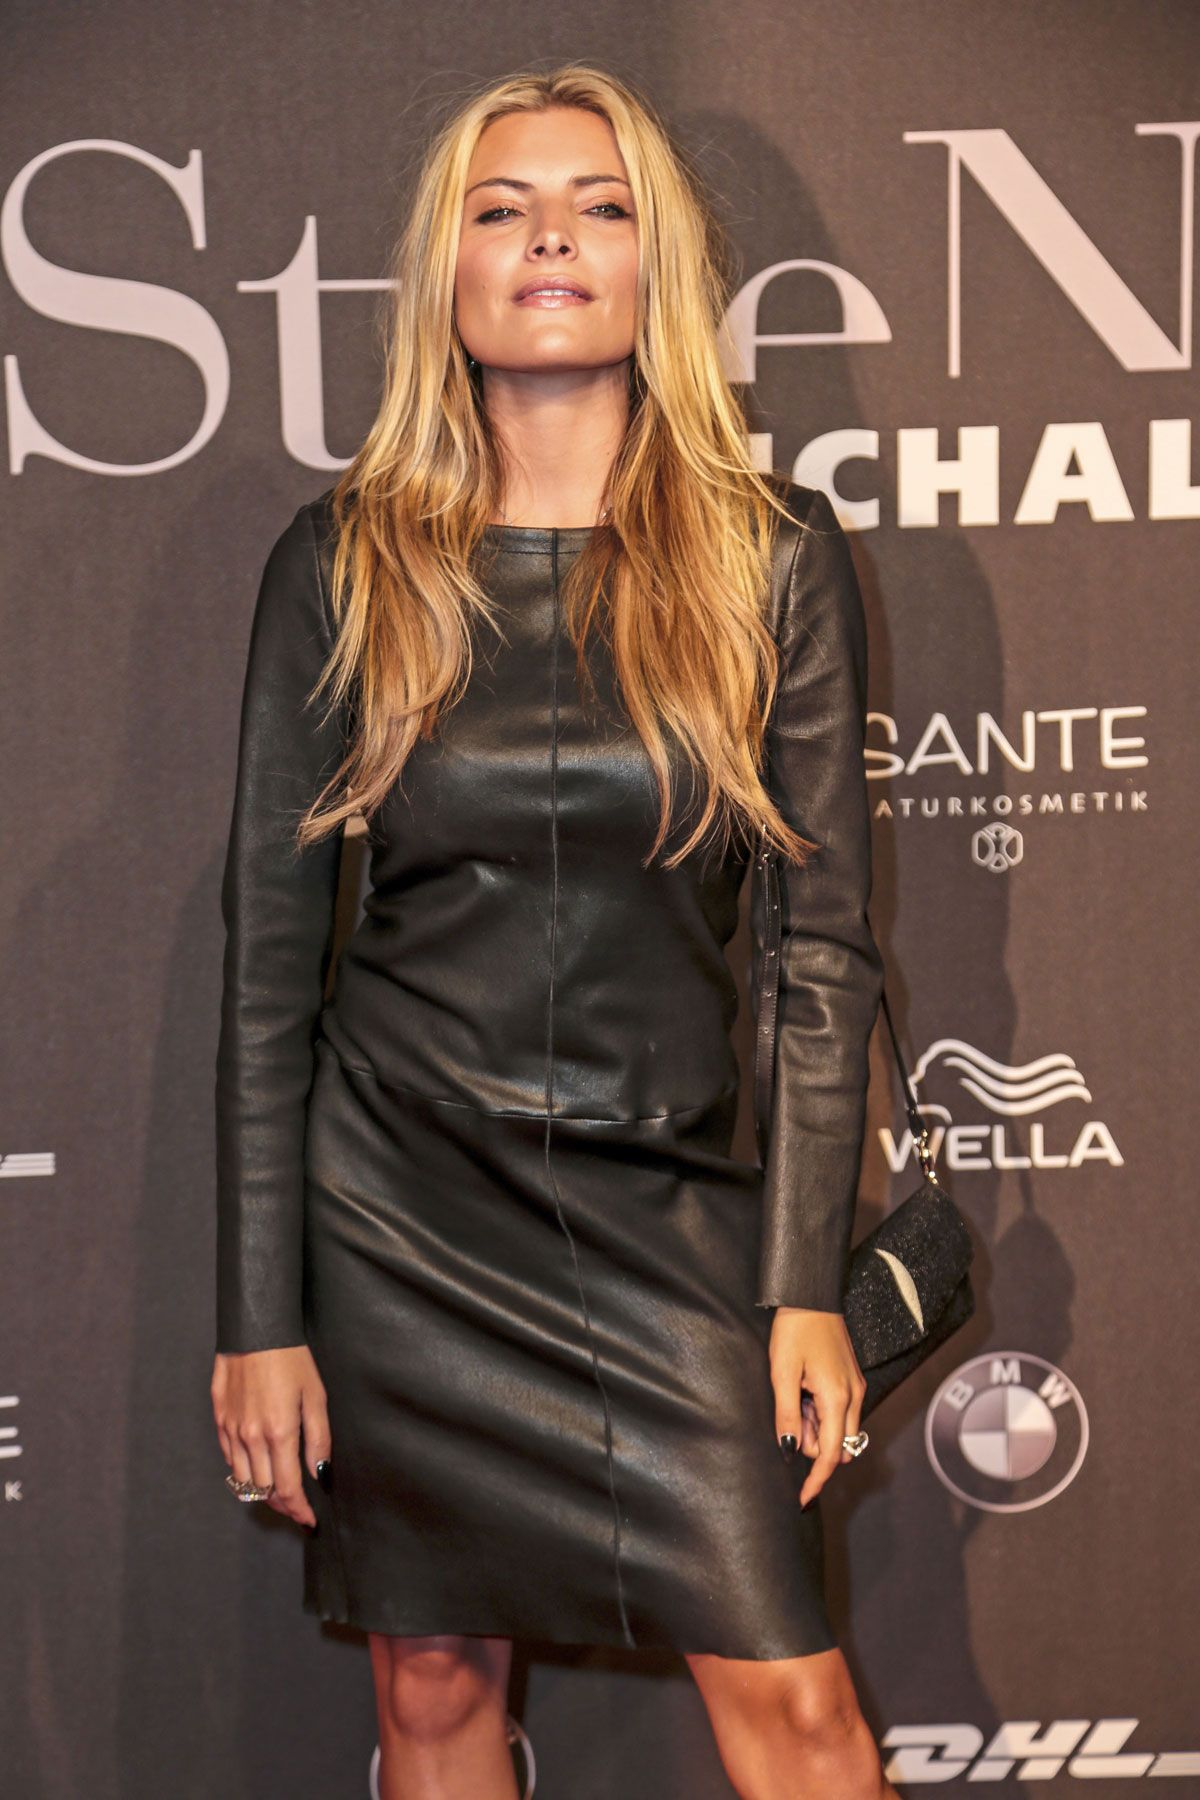 SOPHIA THOMALLA at Mercedes-Benz Fashion Week in Berlin